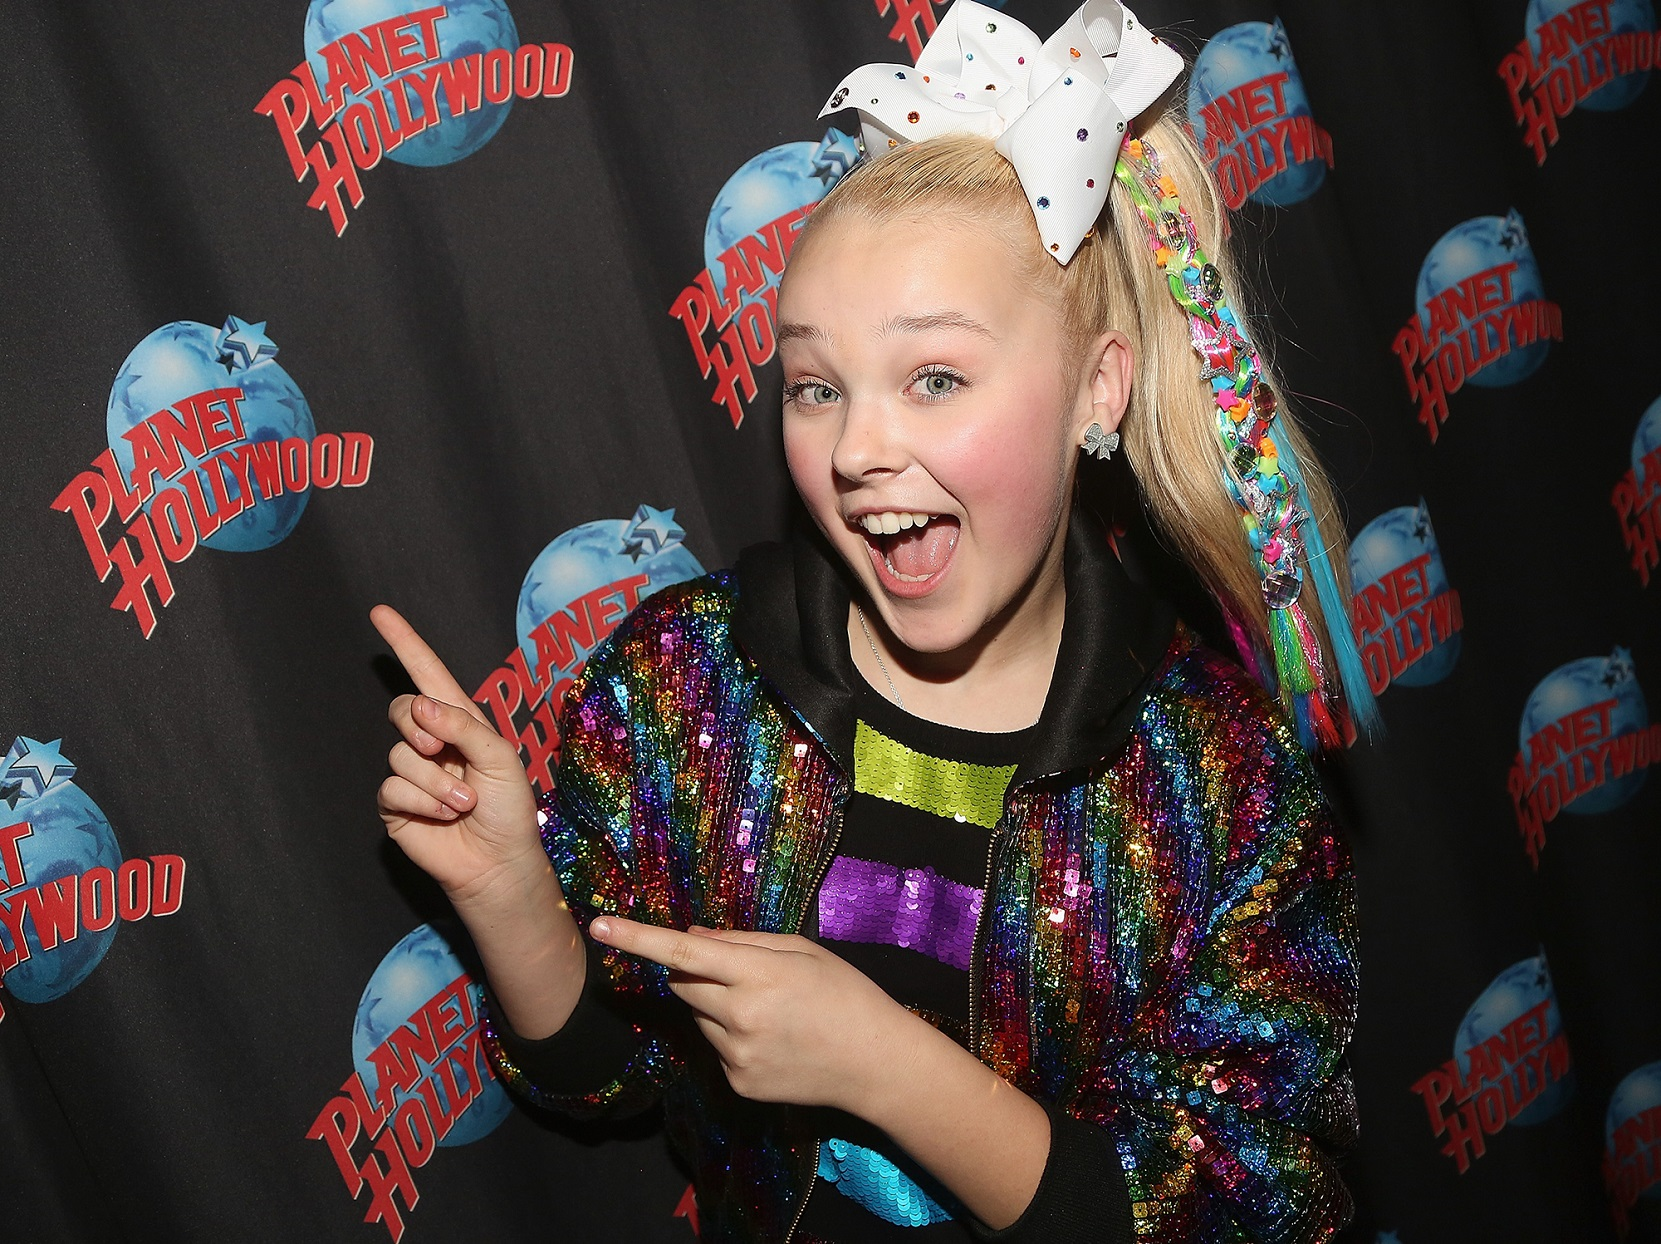 5 Super Cute Products Your Kids Need from JoJo Siwa's Exclusive Amazon Prime Day Line